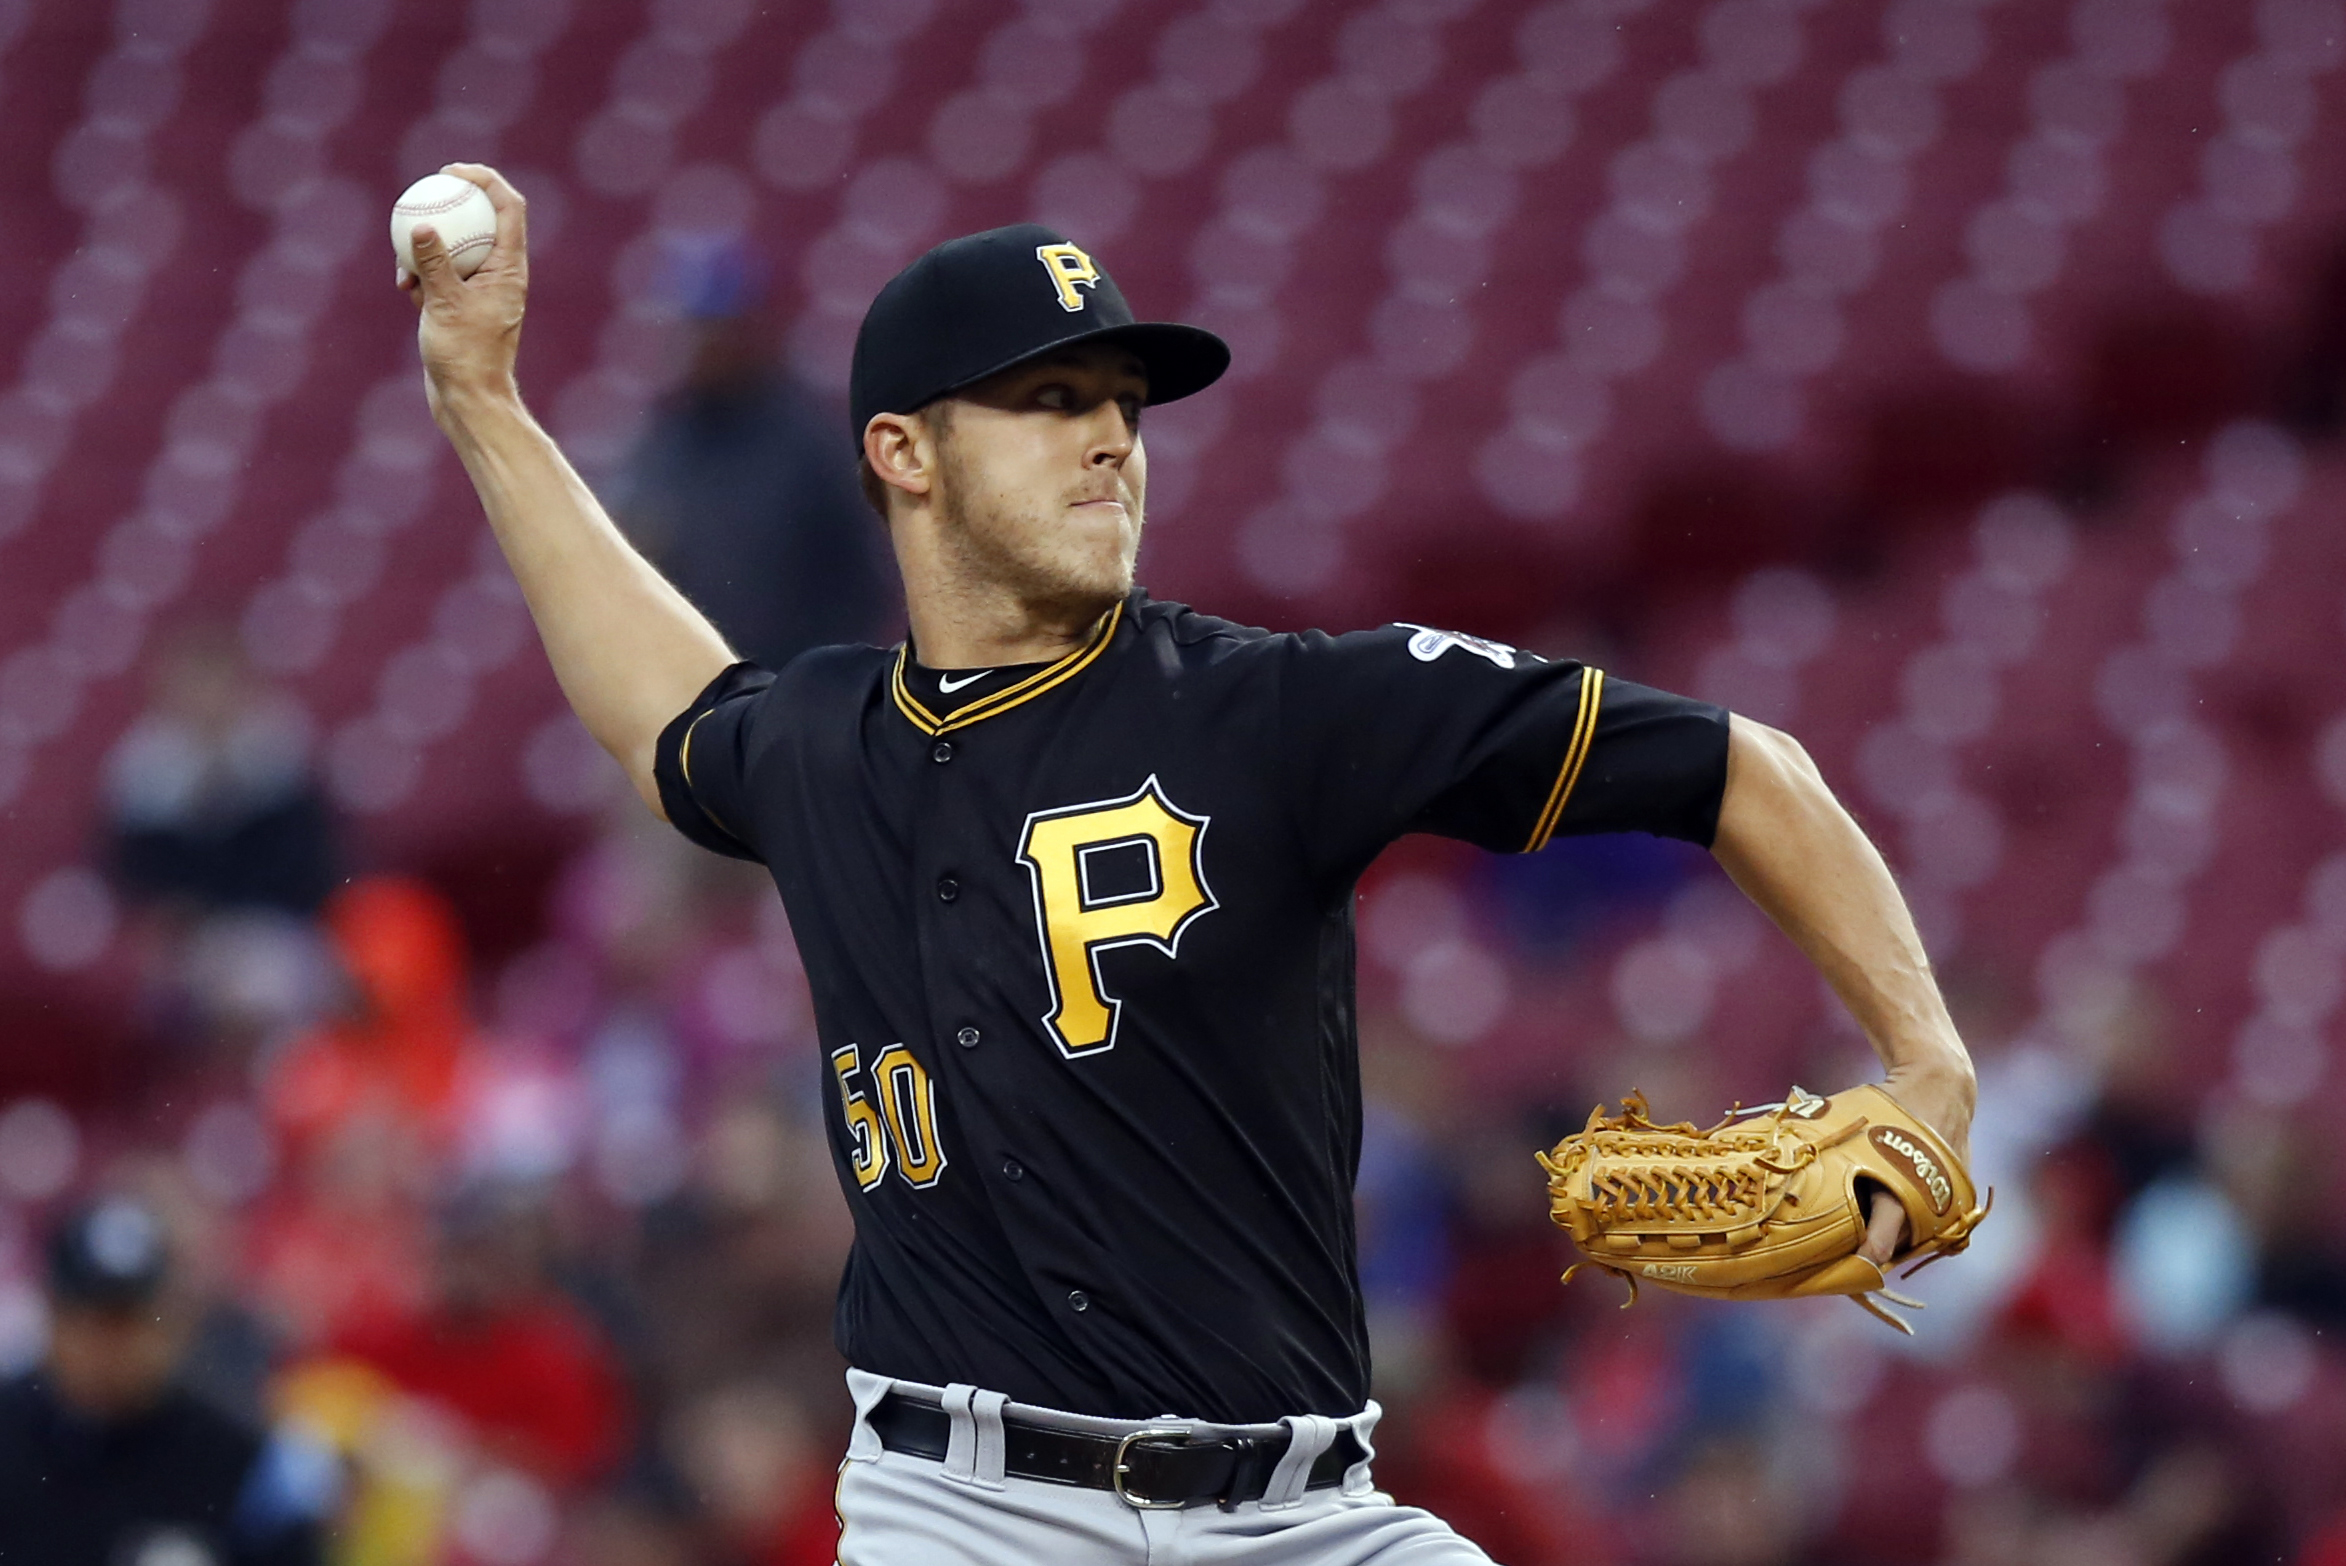 Pittsburgh Pirates starting pitcher Jameson Taillon on the DL